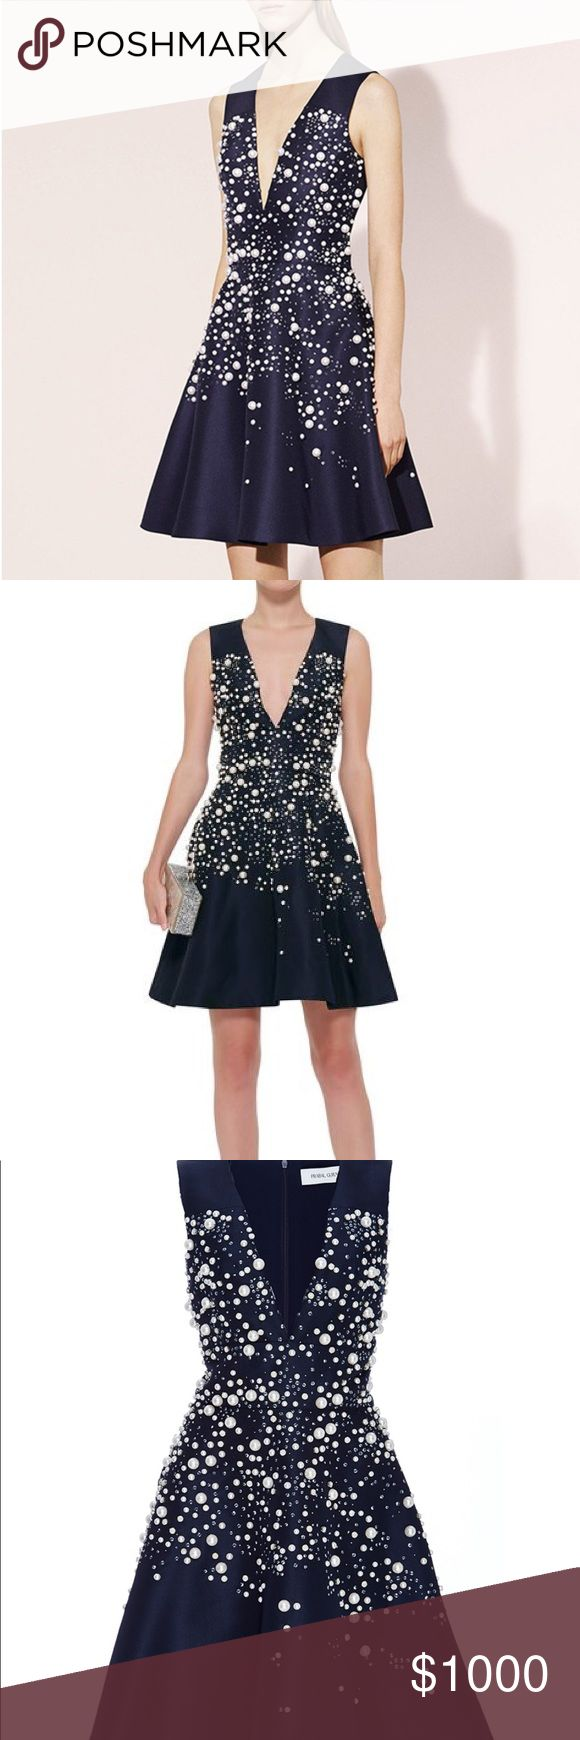 Silk Pearl Embellished Party Dress black 2 NWT Brand new black silk a line dress with Pearl embellishments. Size 2. Could squeeze a 4 in too. Beautiful rare dress. Sold out everywhere online. Prabal Gurung Dresses